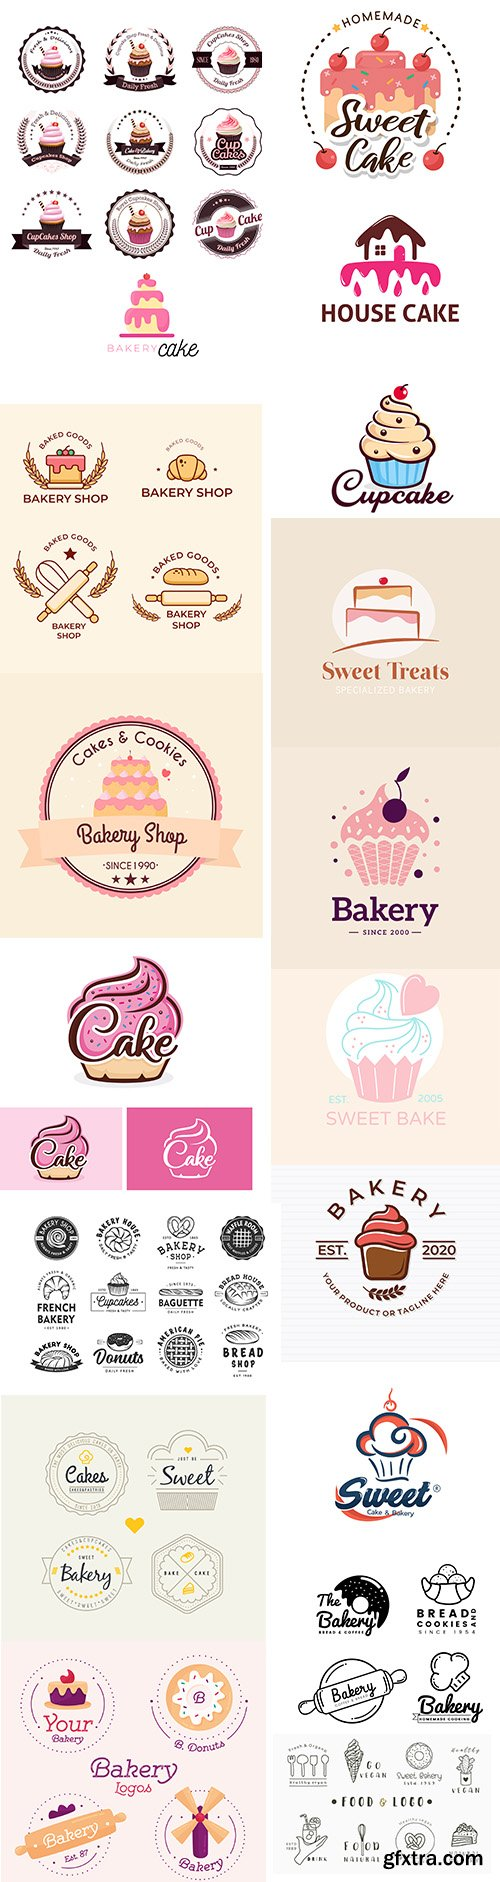 Bakery cake logo template collection